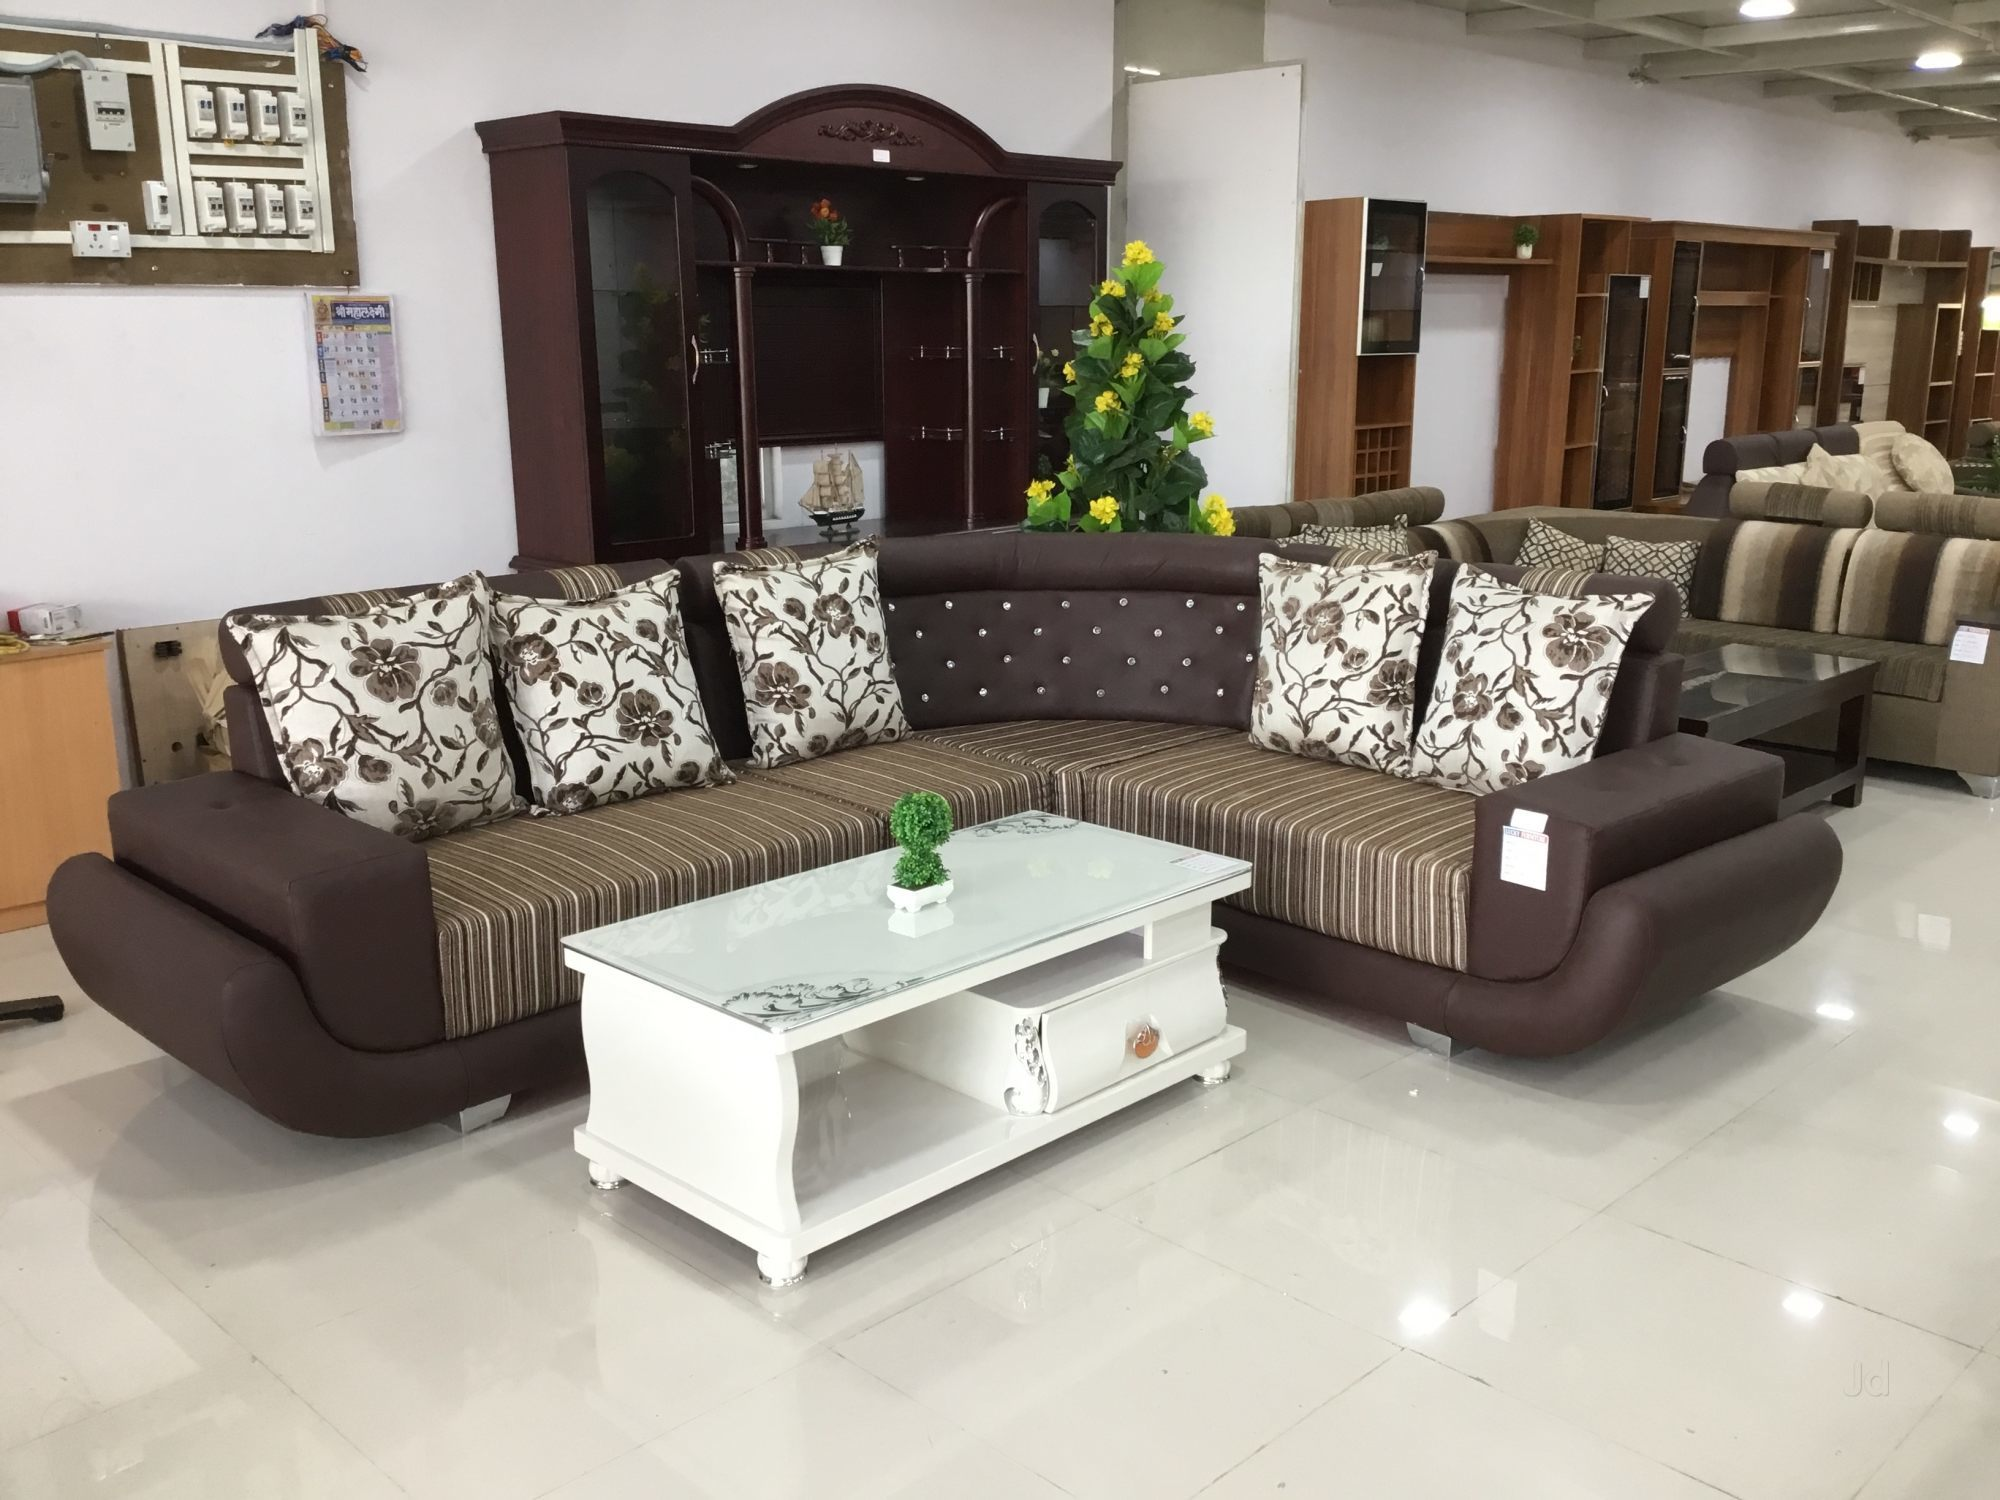 Lucky Funriture Mall - Leading Customized Furniture Manufacturer in Sangli